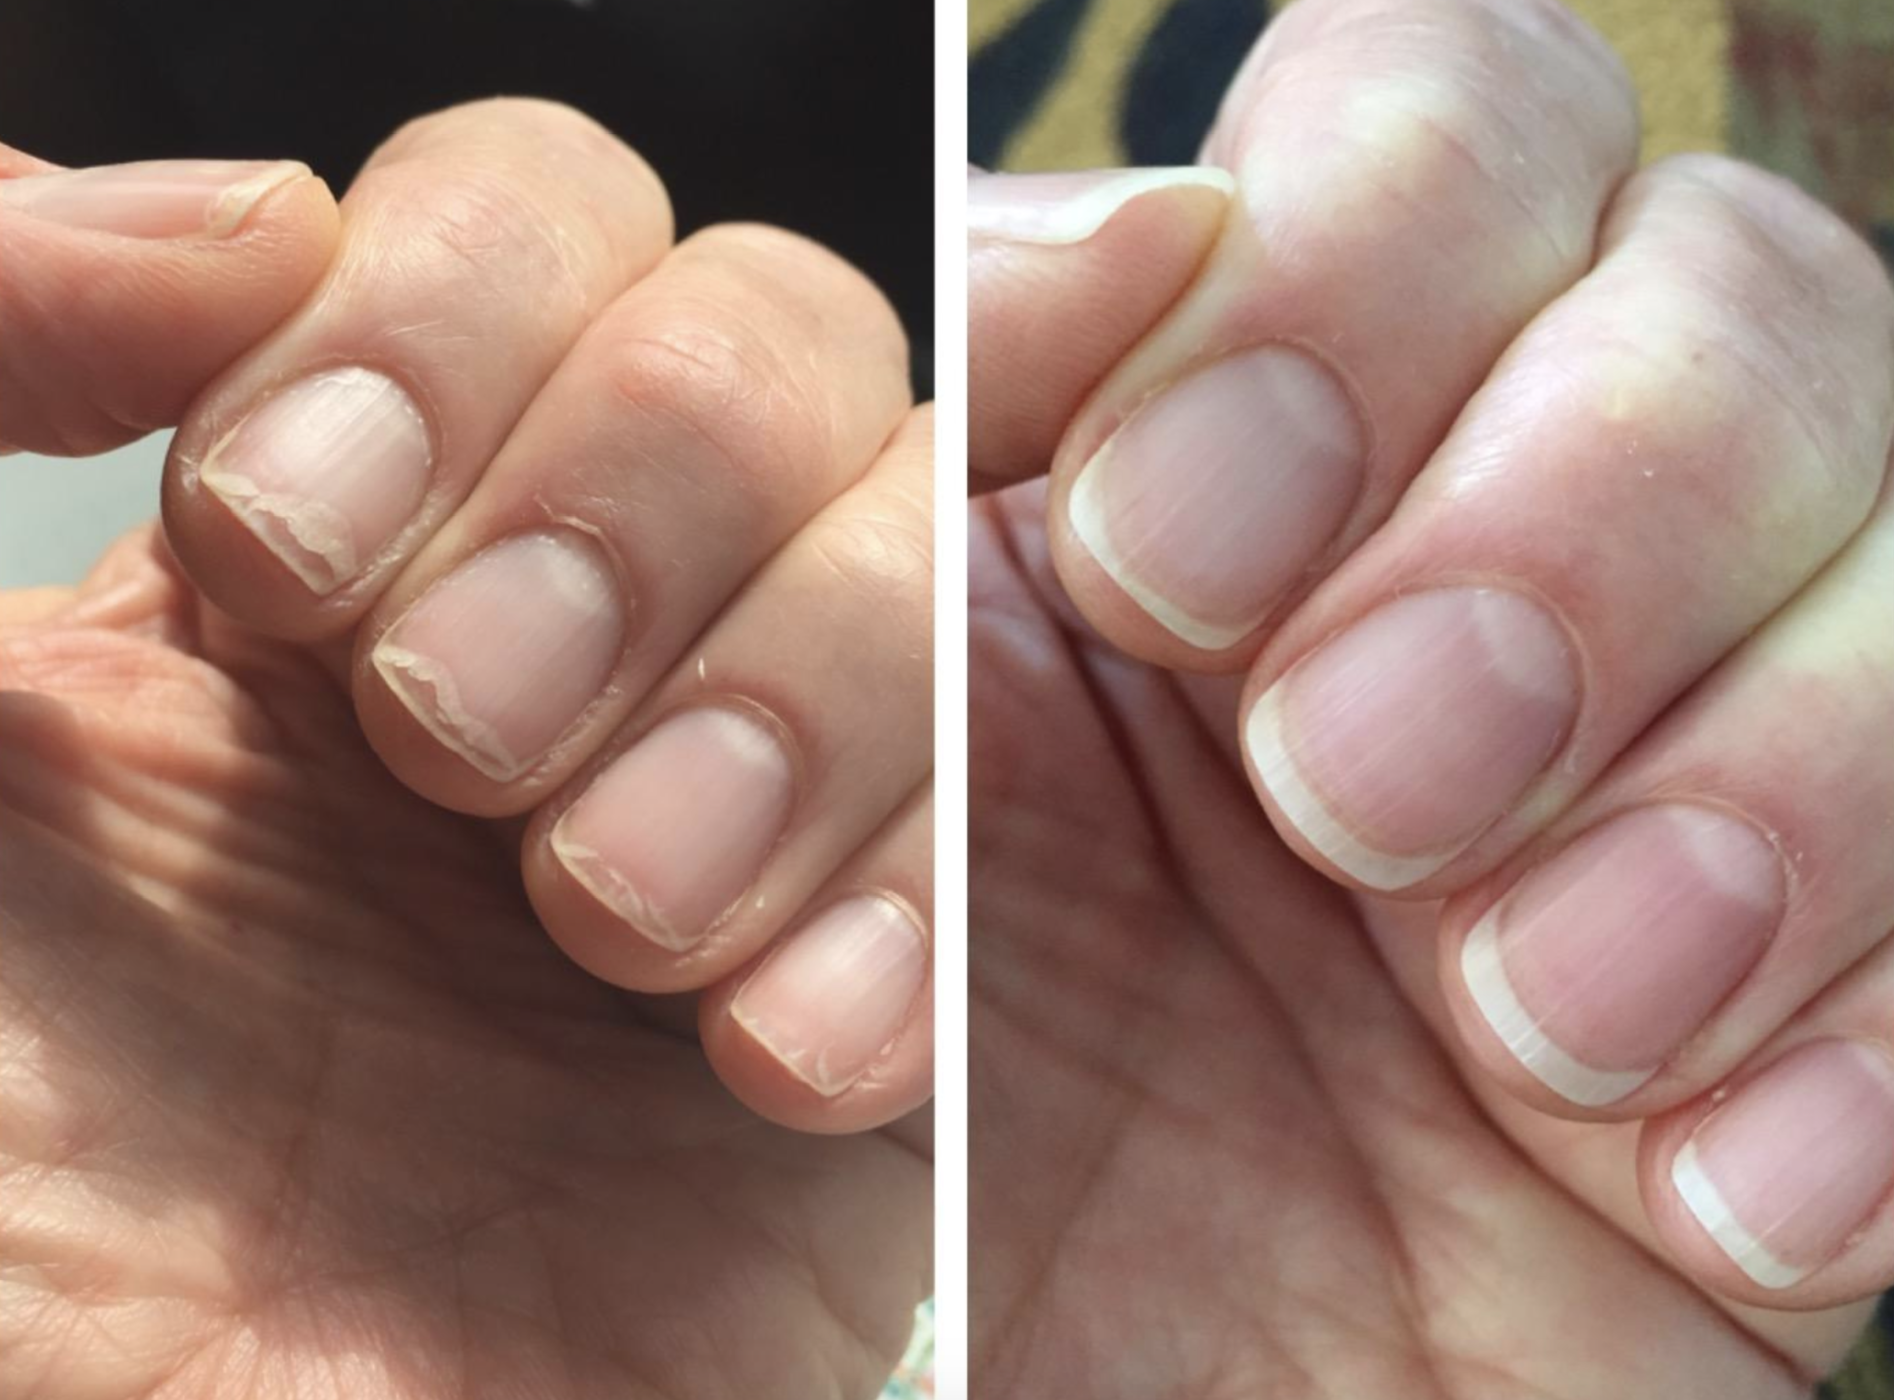 Left side shows reviewer's hand before the cuticle oil with short, peeling nails and overgrown cuticles. The left side shows the nails slightly longer with no peeling and neater cuticles.